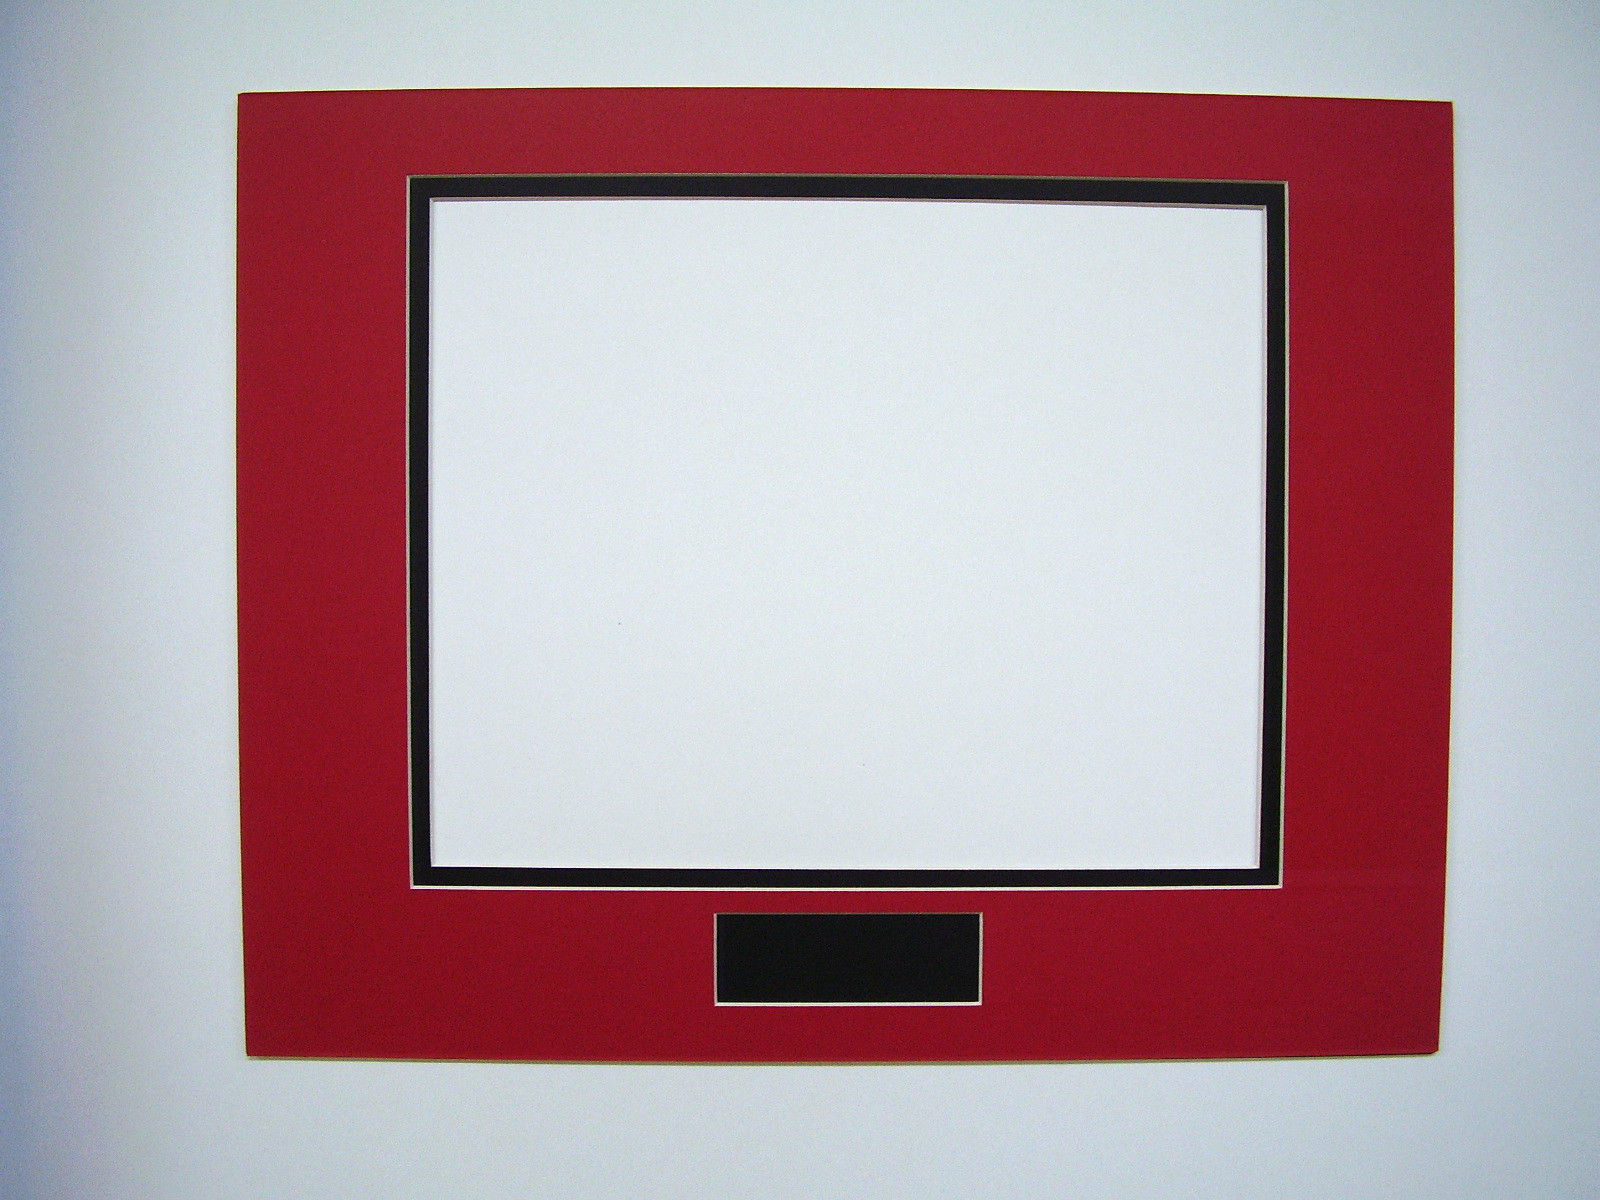 Picture Framing Mat 16x20 For 11x14 Photo Red And Black